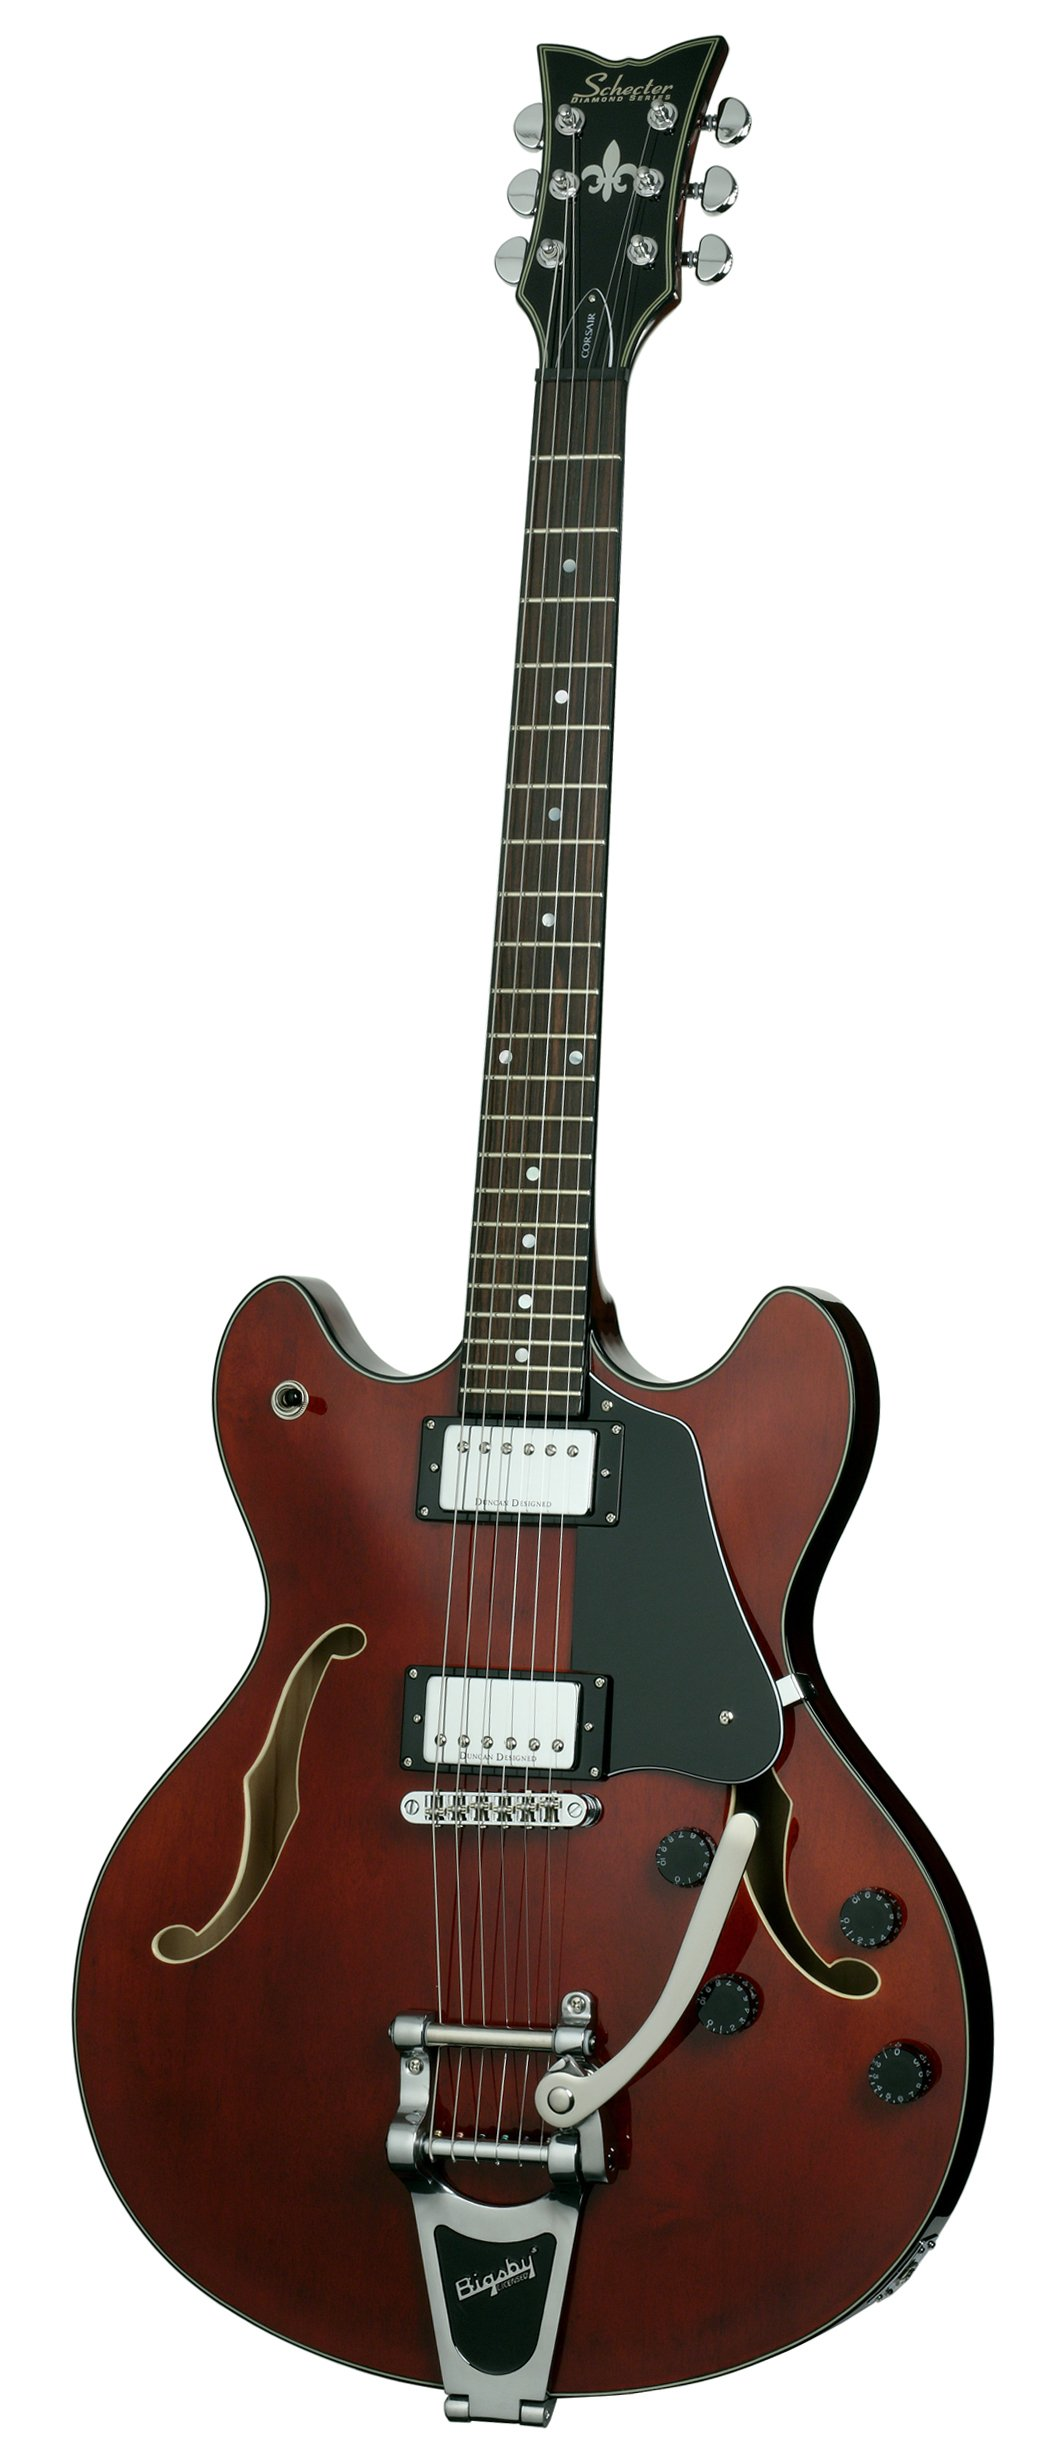 Cheap Schecter Corsair with Bigsby Electric Guitar (Gloss Walnut) Black Friday & Cyber Monday 2019